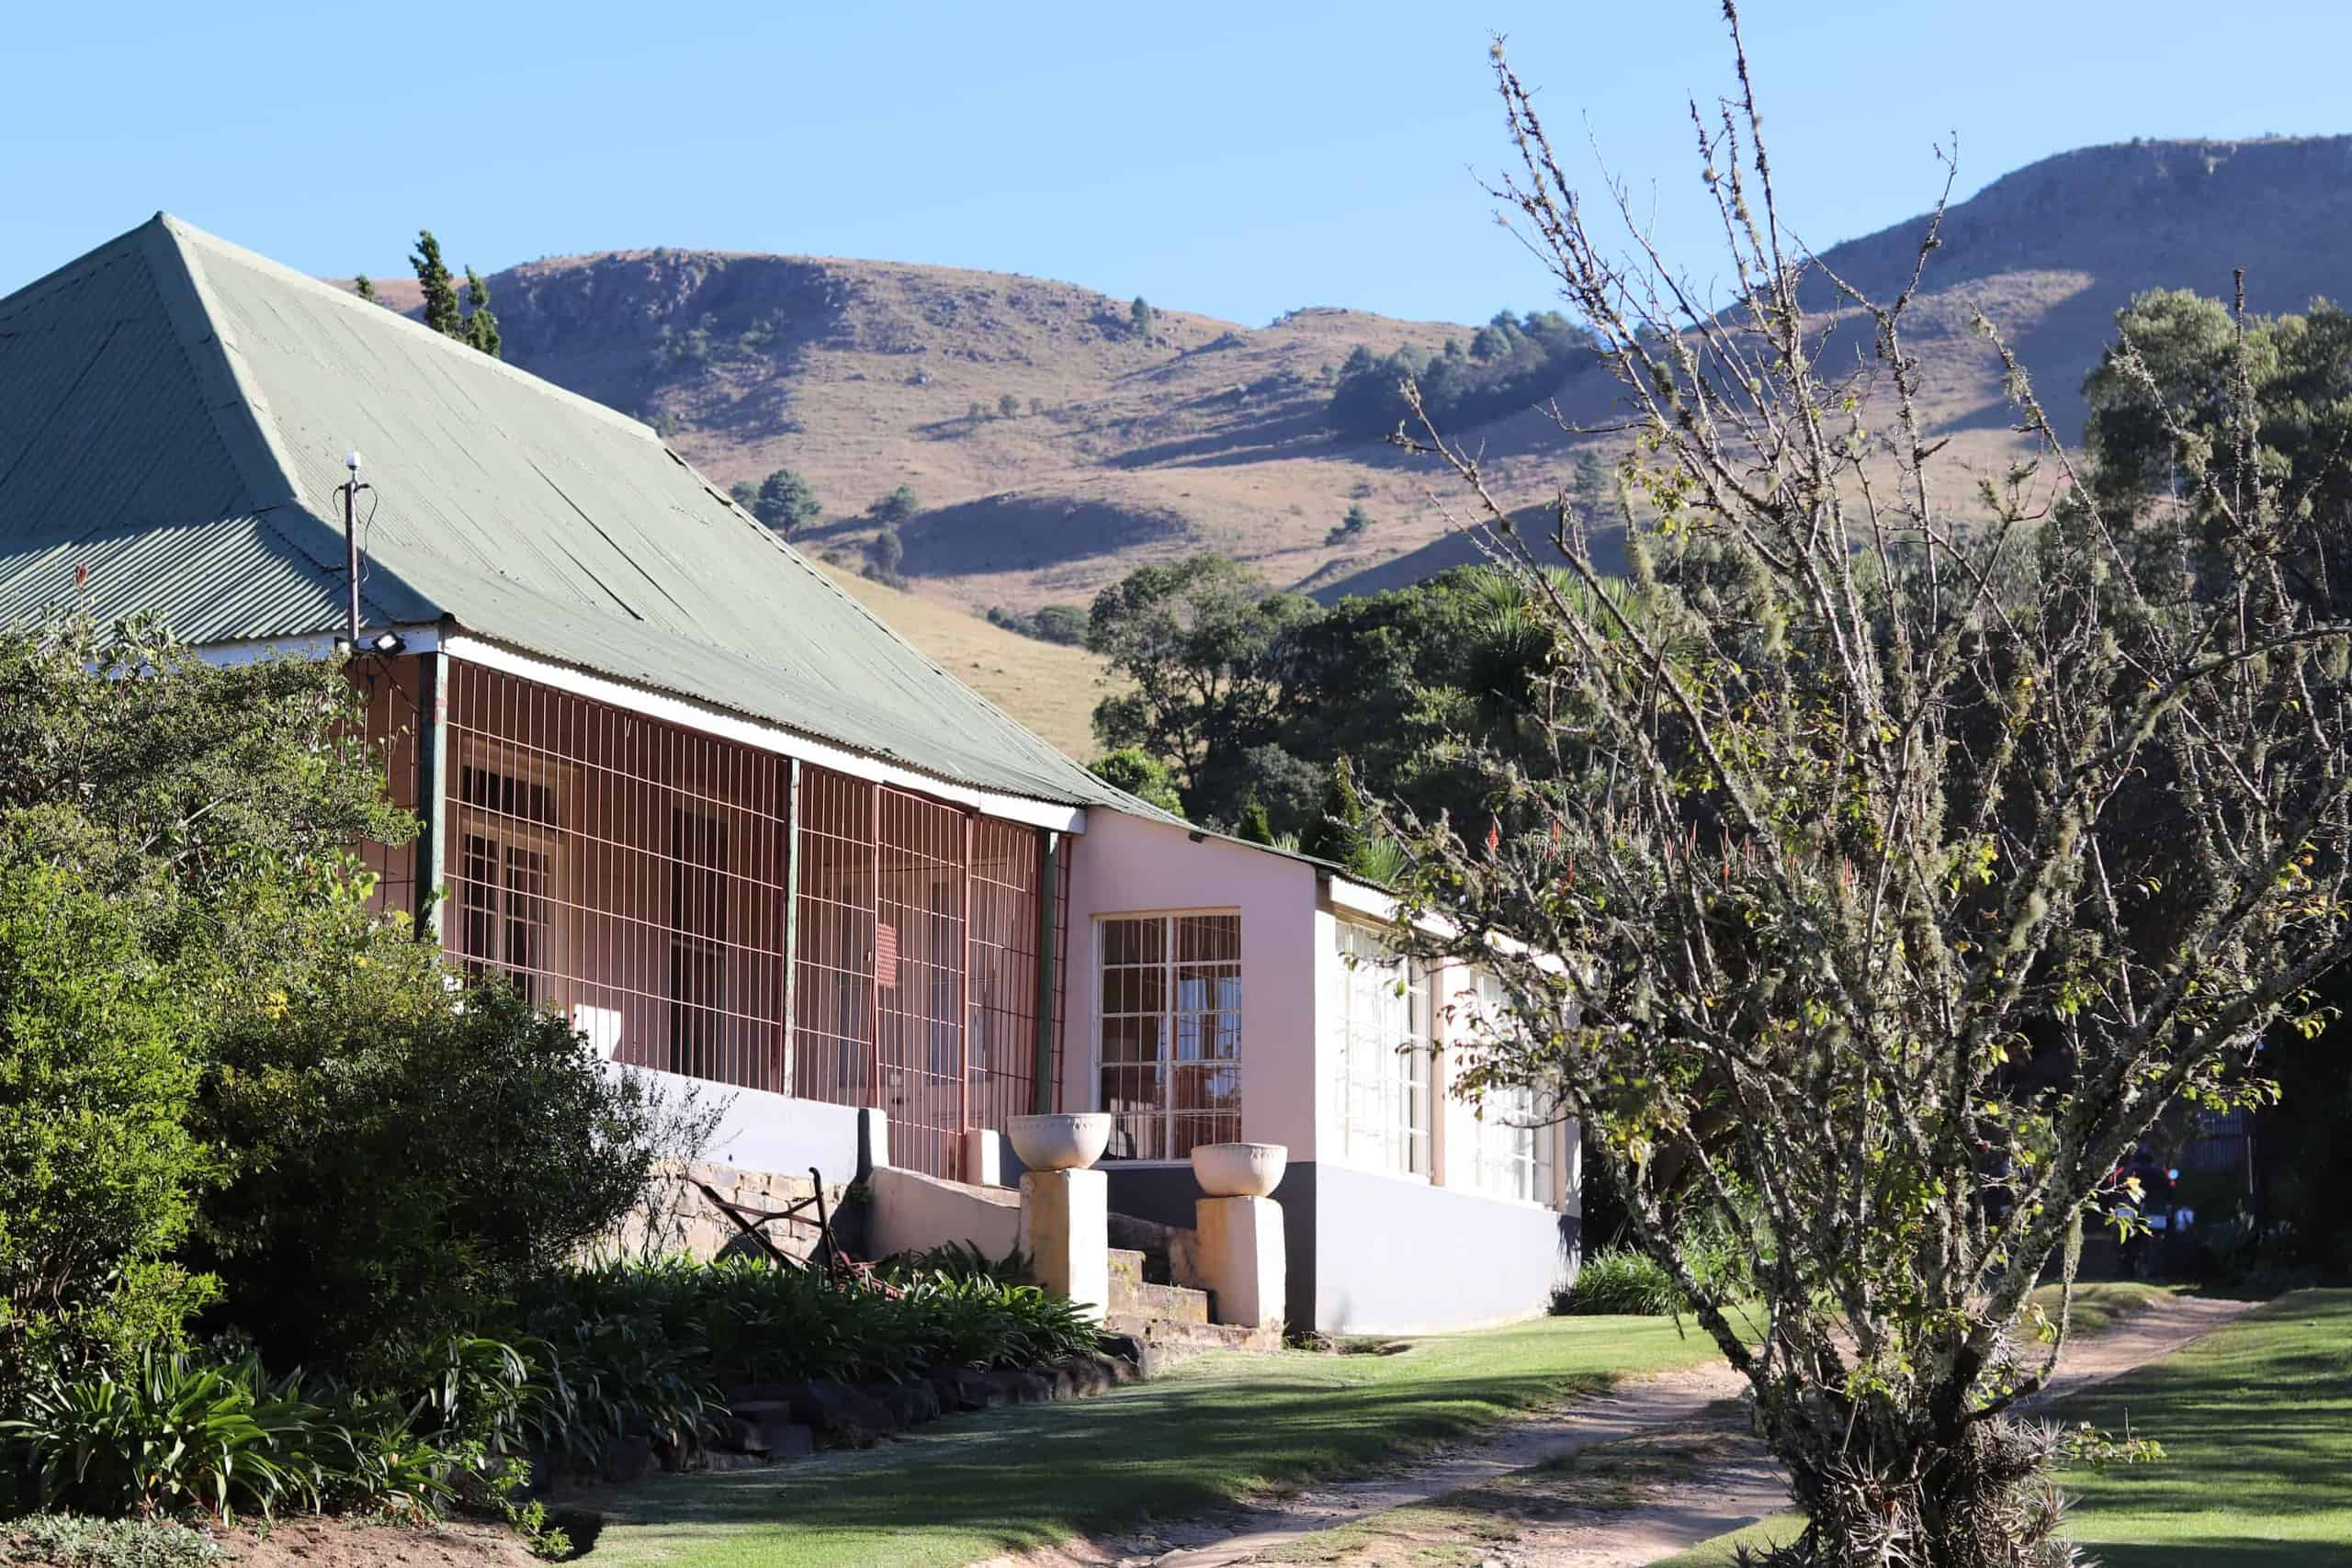 Accommodation in Kwazulu Natal Midlands Meander Mount Park